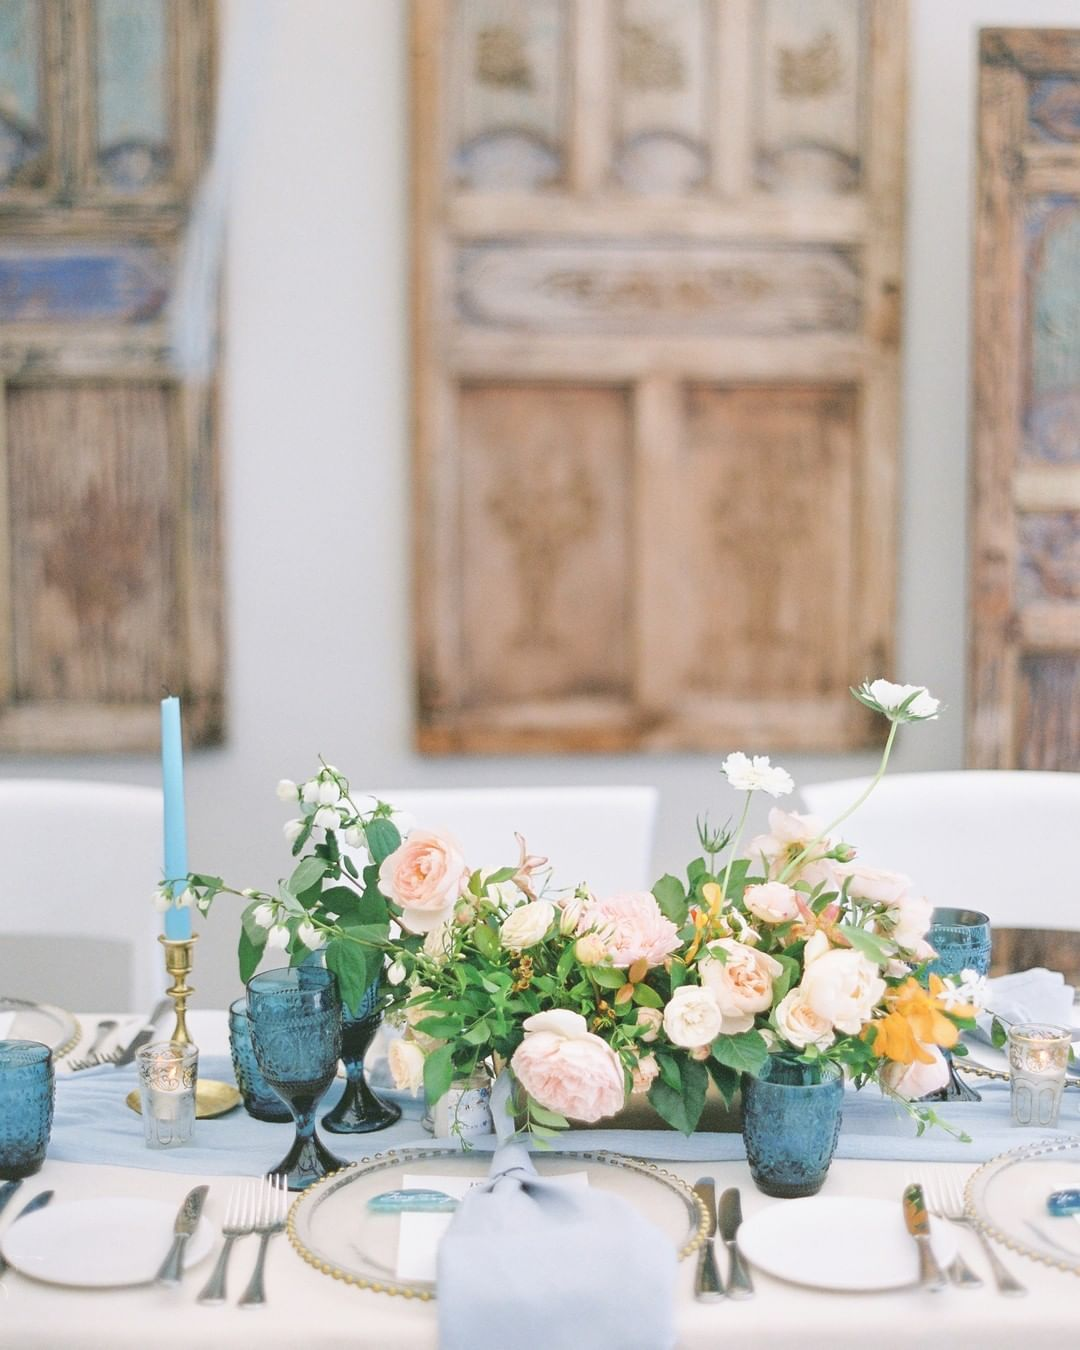 centerpieces for a beach wedding    Wedding styling and planning  thewhiteprojectwedding